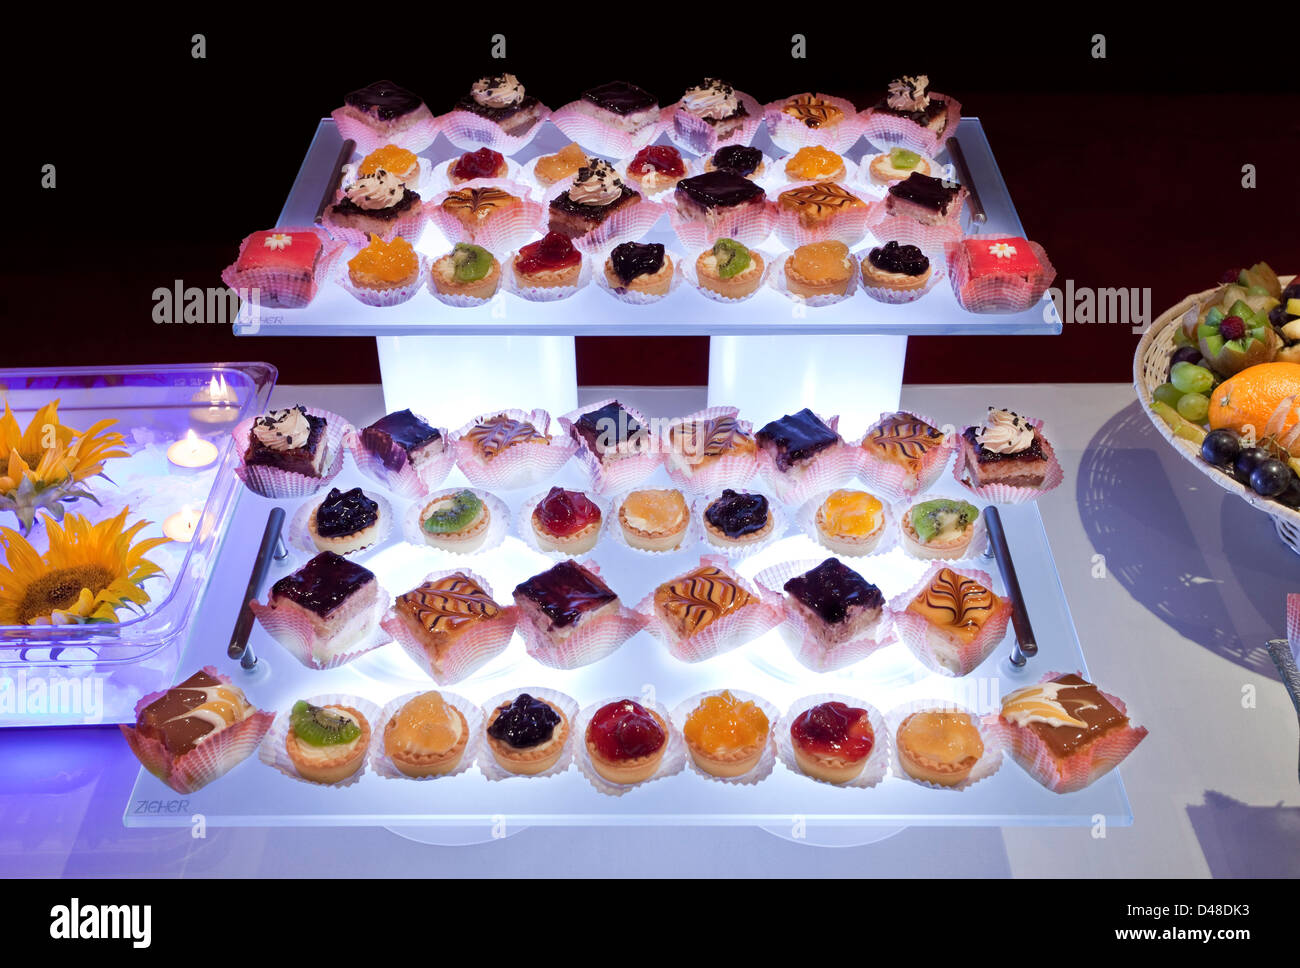 Catering Platters With Small Cakes Stock Photo Alamy